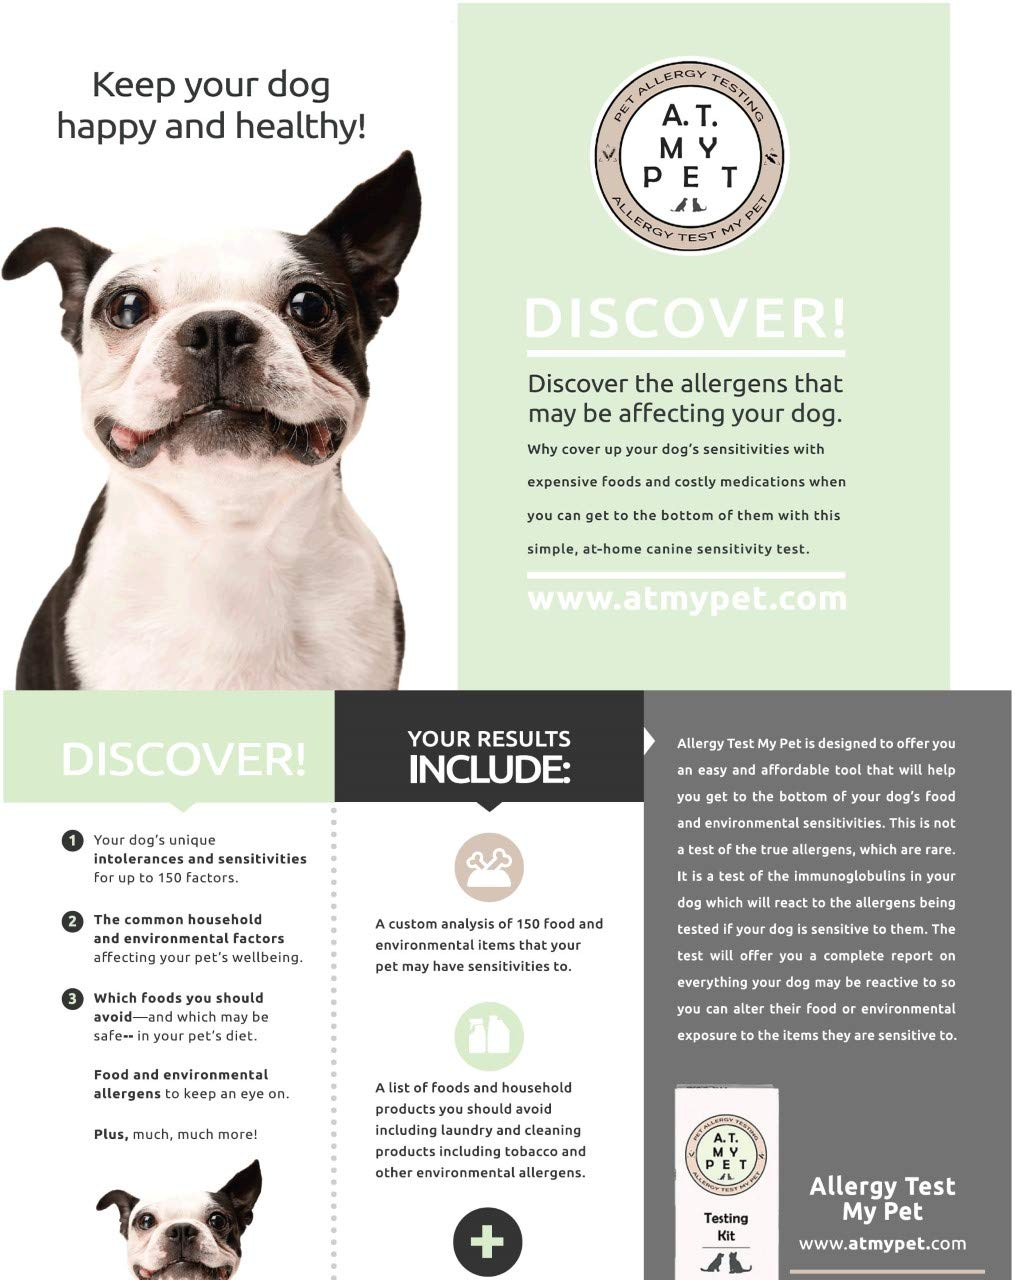 Allergy Test My Pet for Small Dogs by Allergy Test My Pet